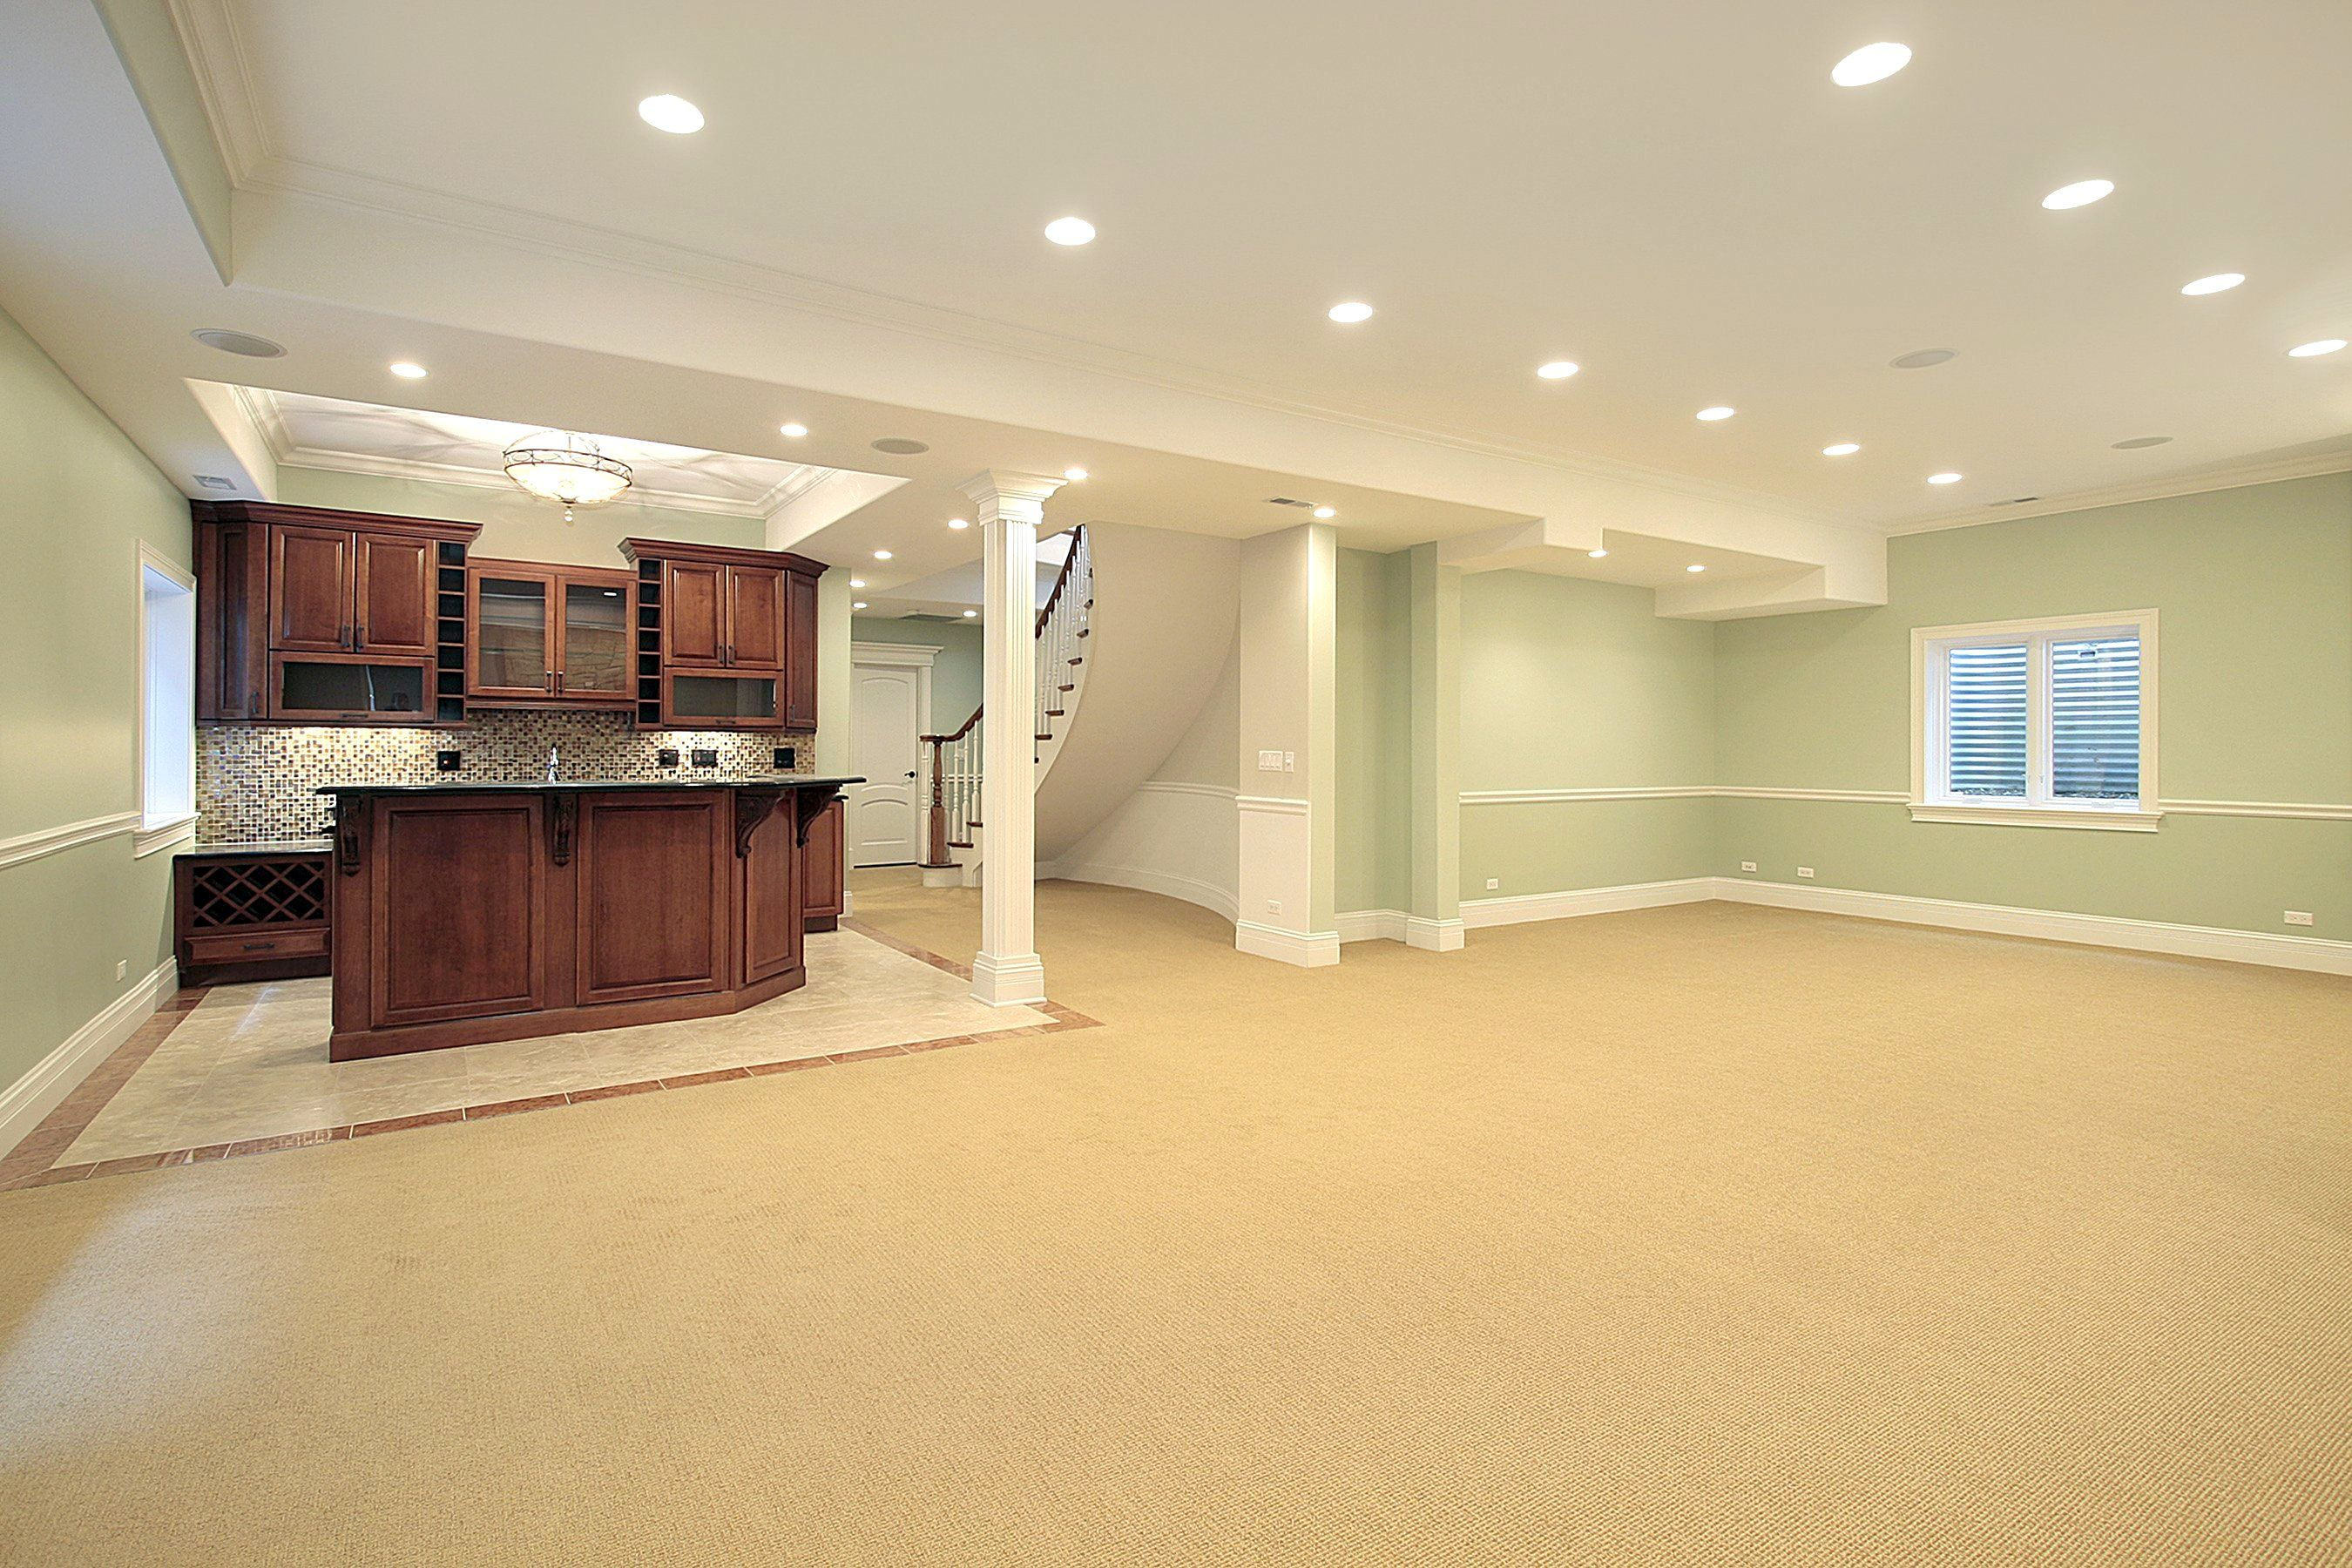 Adorable Spacious Basement Remodeling with Soft Green Wall Paint ...